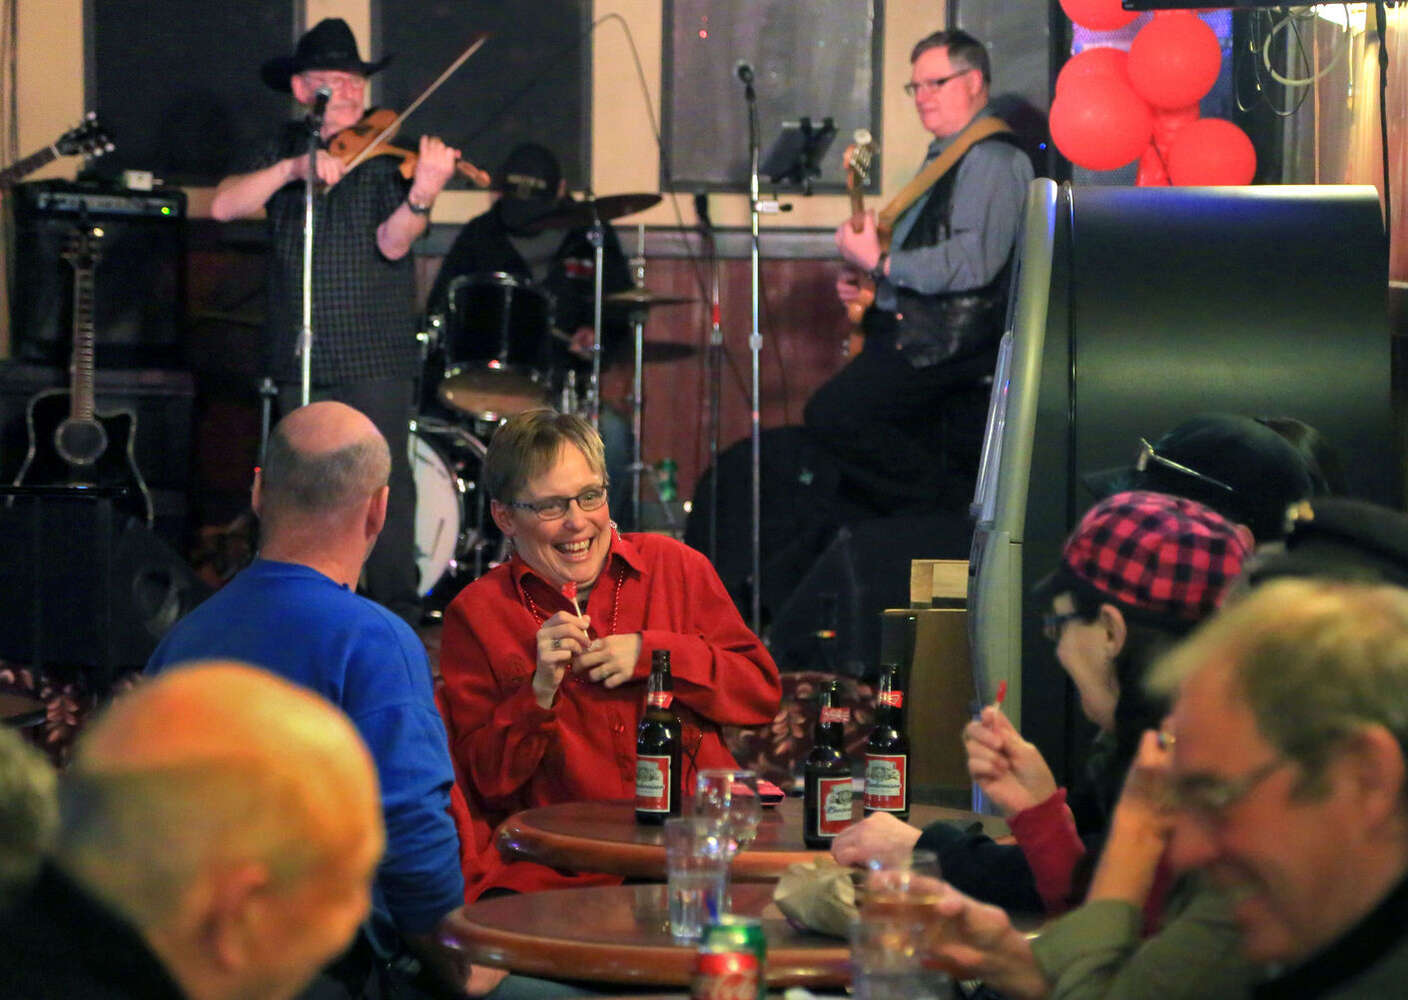 Friends share a laugh as a country band performs in the background. (Colin Corneau)